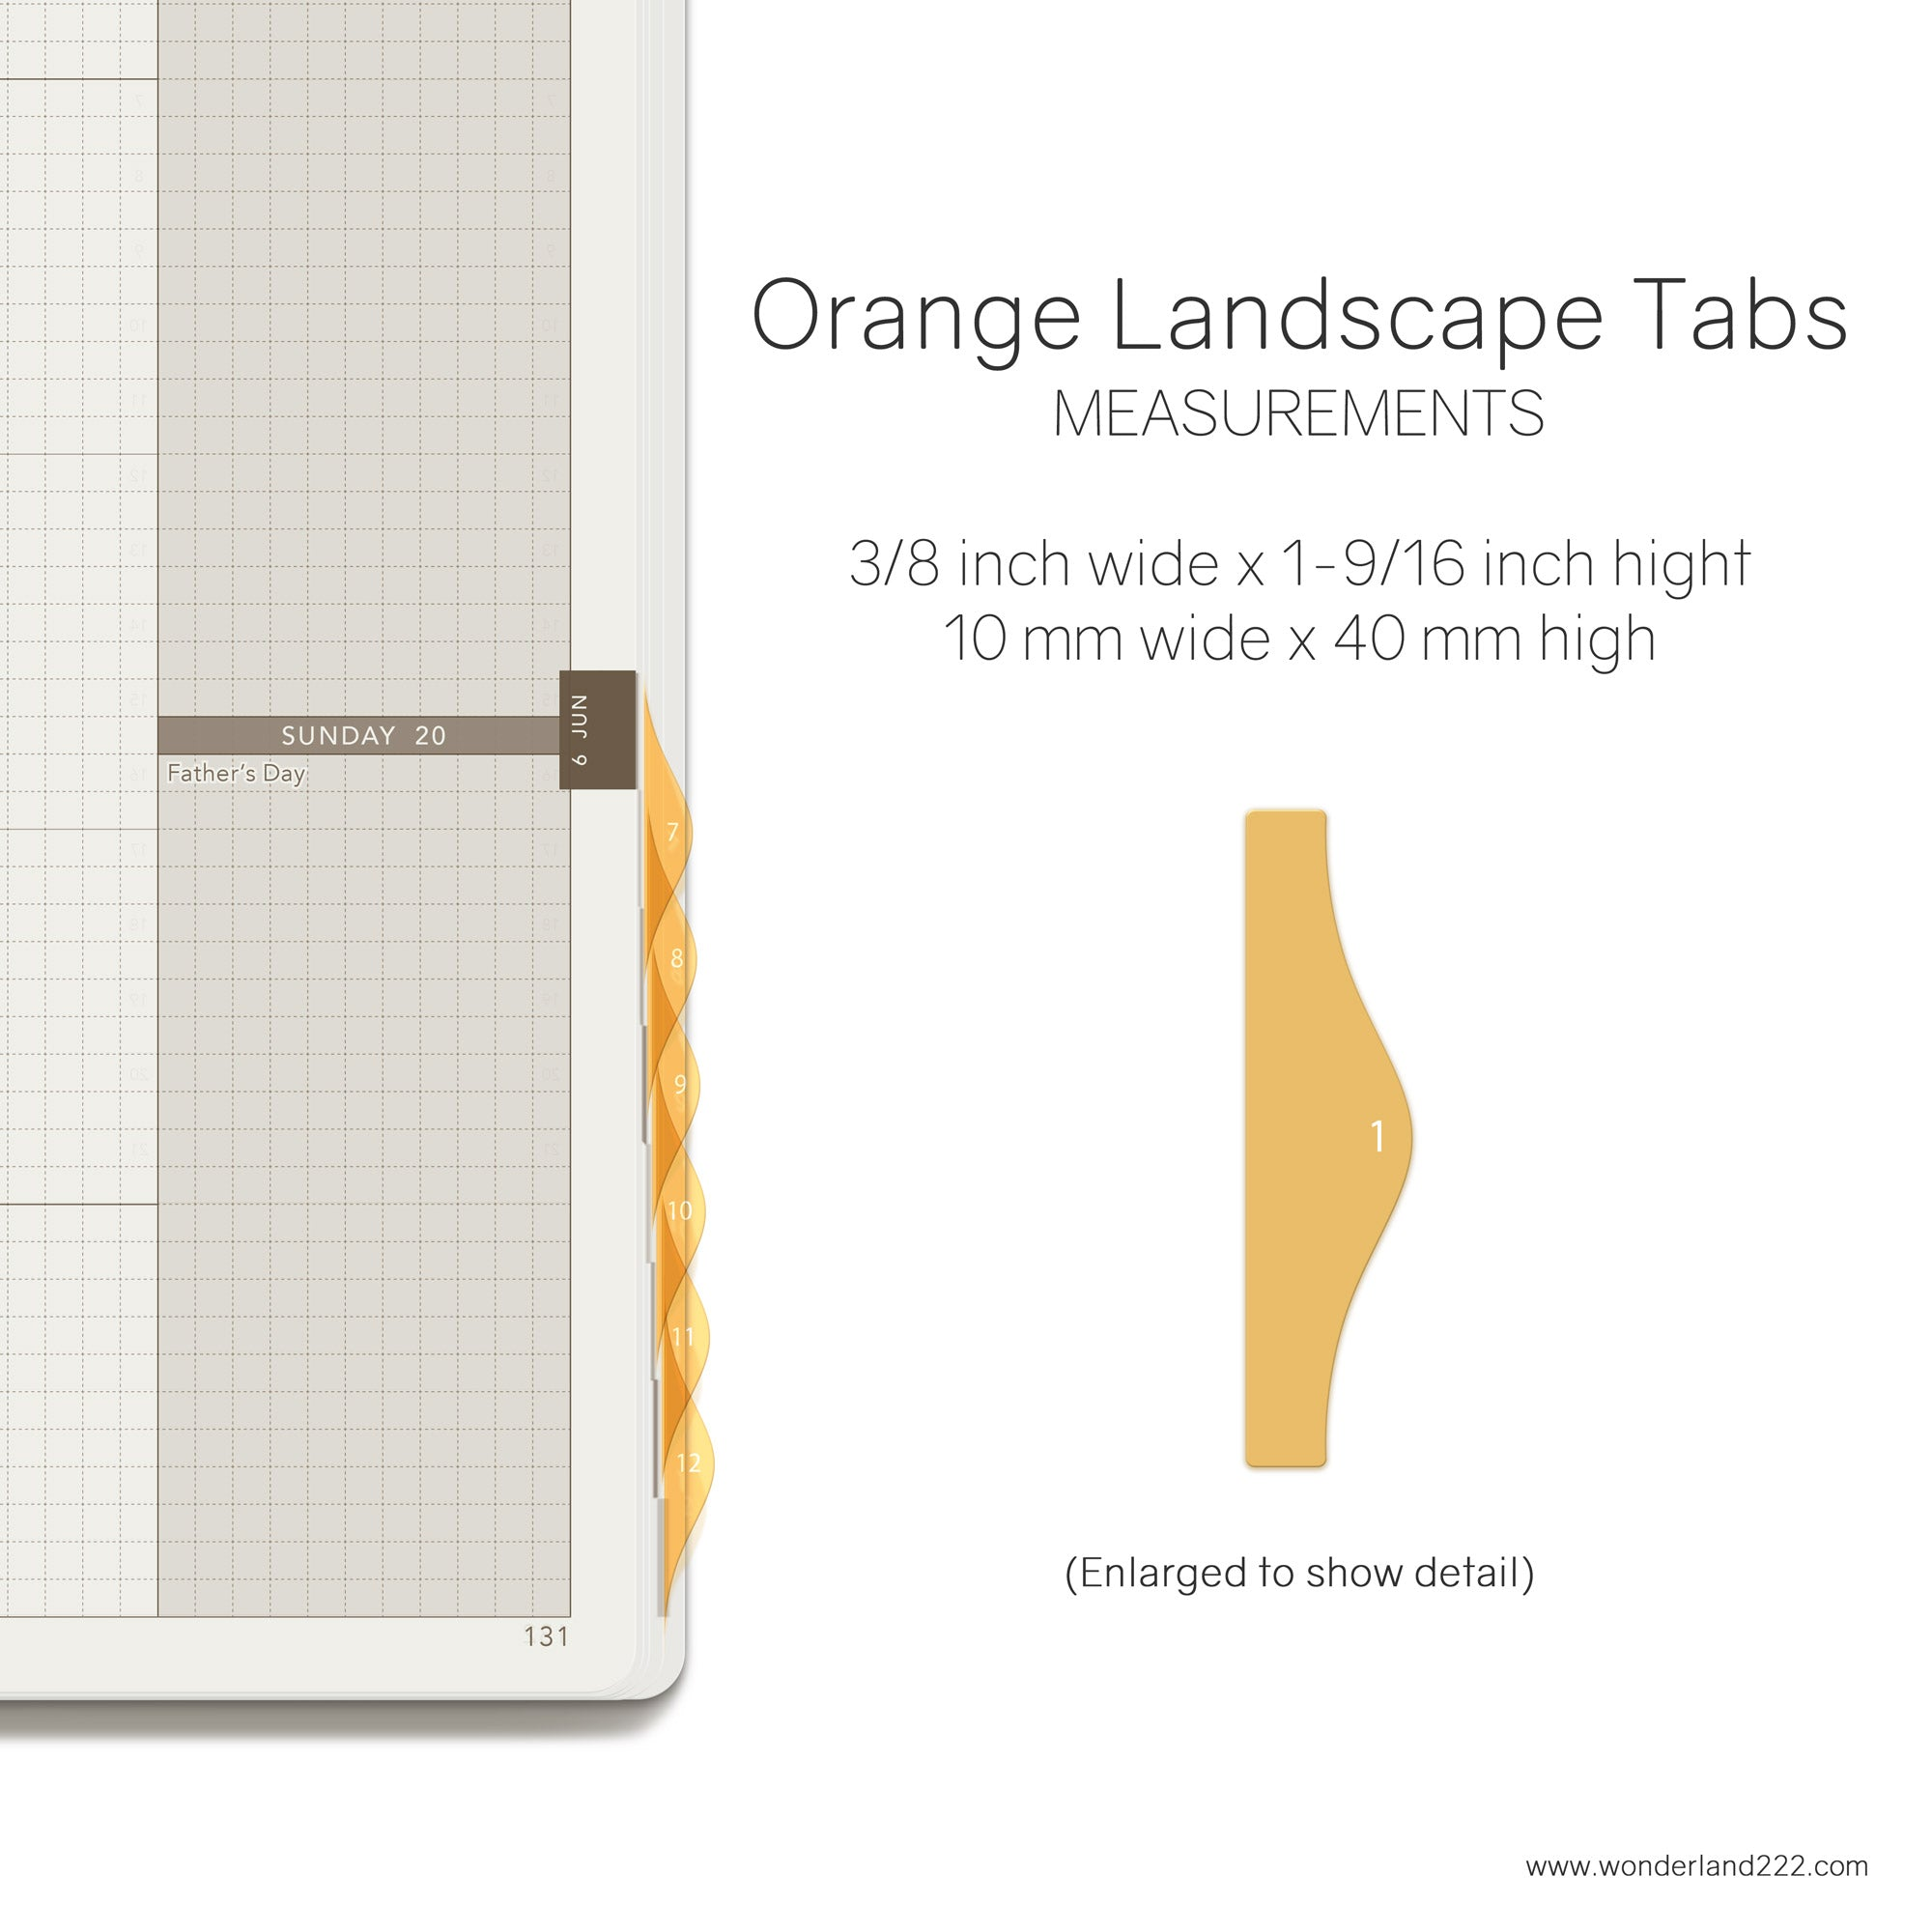 Wonderland 222 Tomoe River Paper Notebooks Planners with HighTide Landscape Monthly Index Tabs Orange Transparent